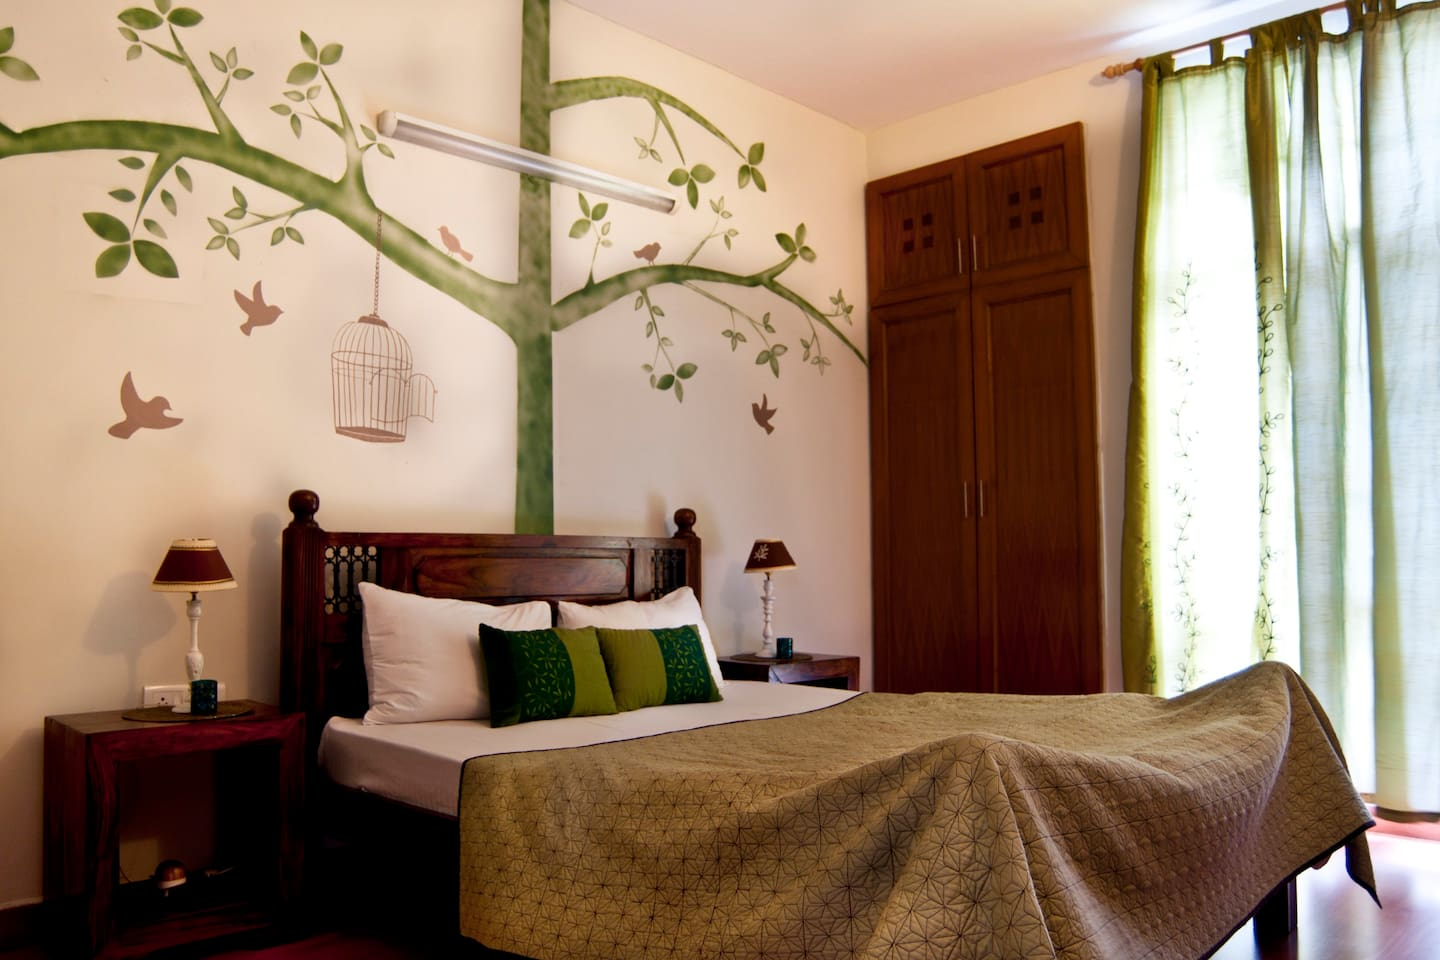 This is the Green Room with a beautiful hand painted motif in the background. It also has a small garden attached to it.